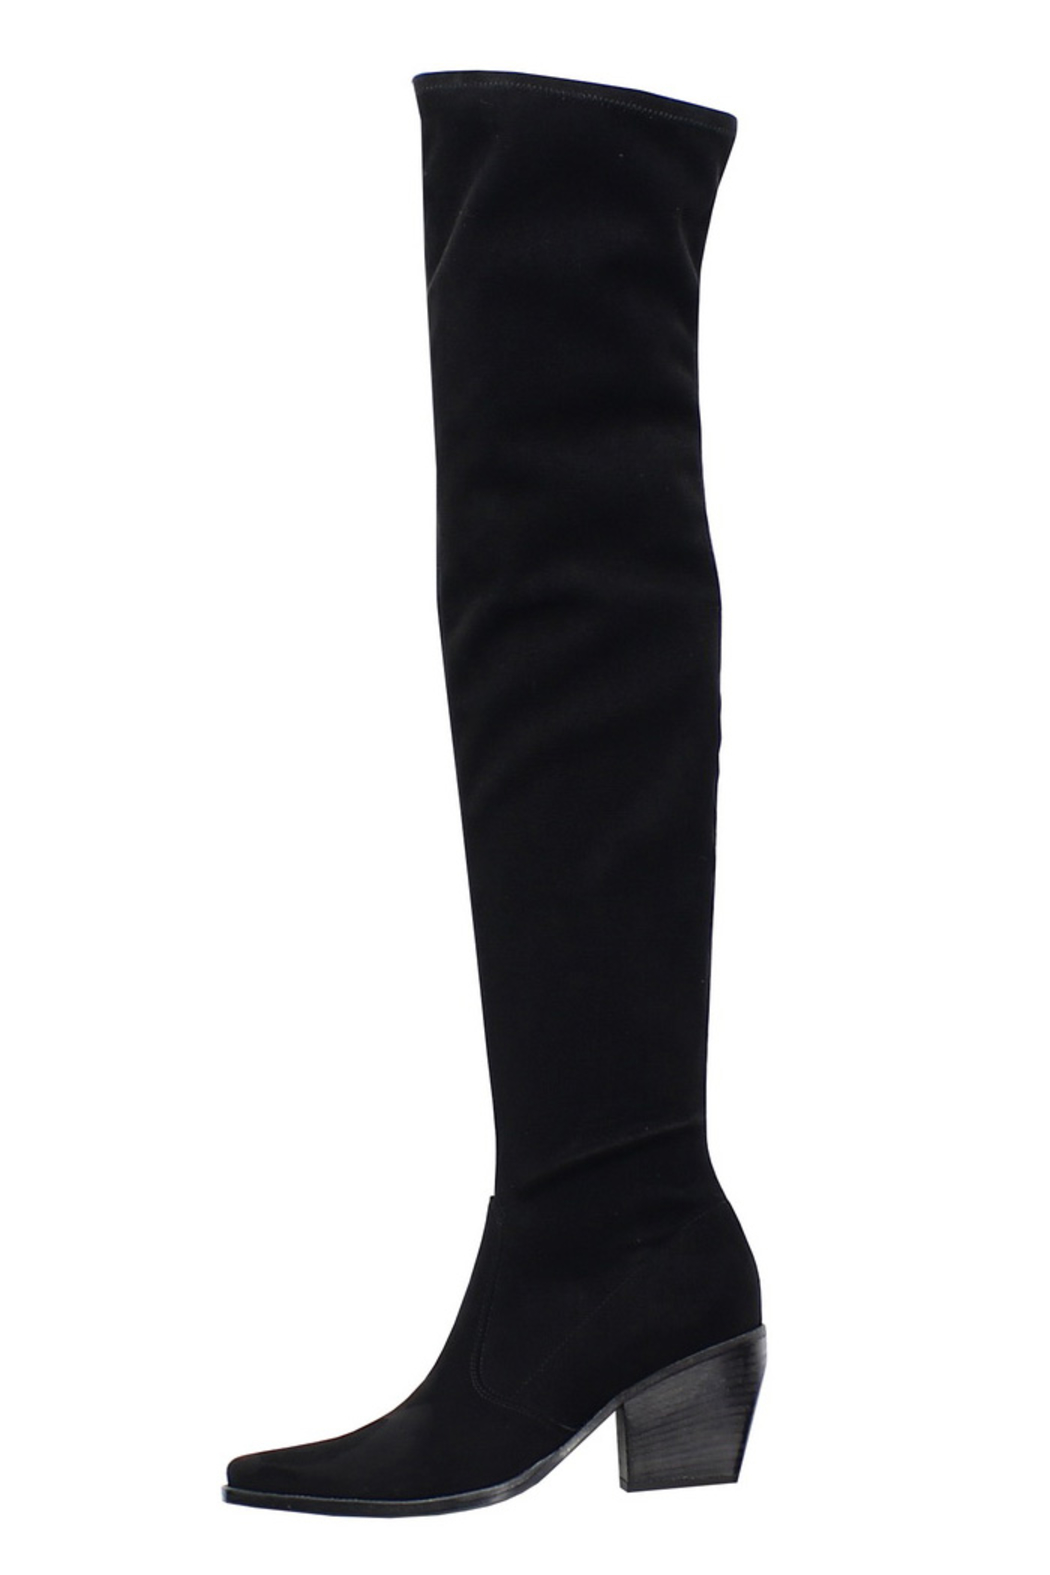 Kennel & Schmenger OVER THE KNEE BOOT - Main Image